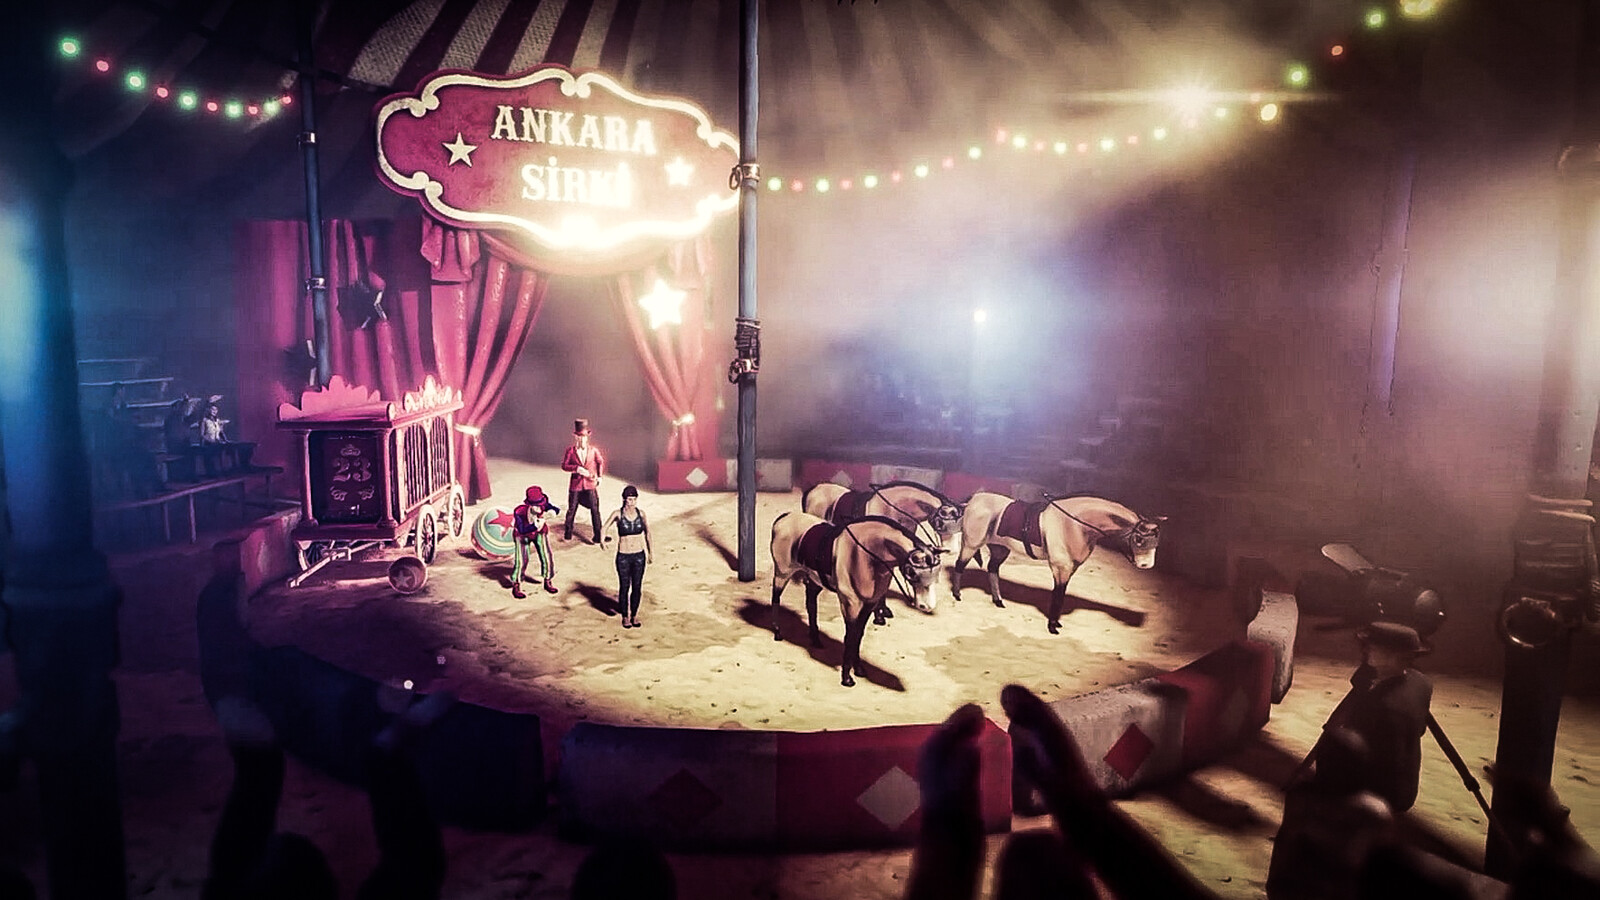 In circuses, animals were used a lot at that time. I hope we only see it in animations now 😔